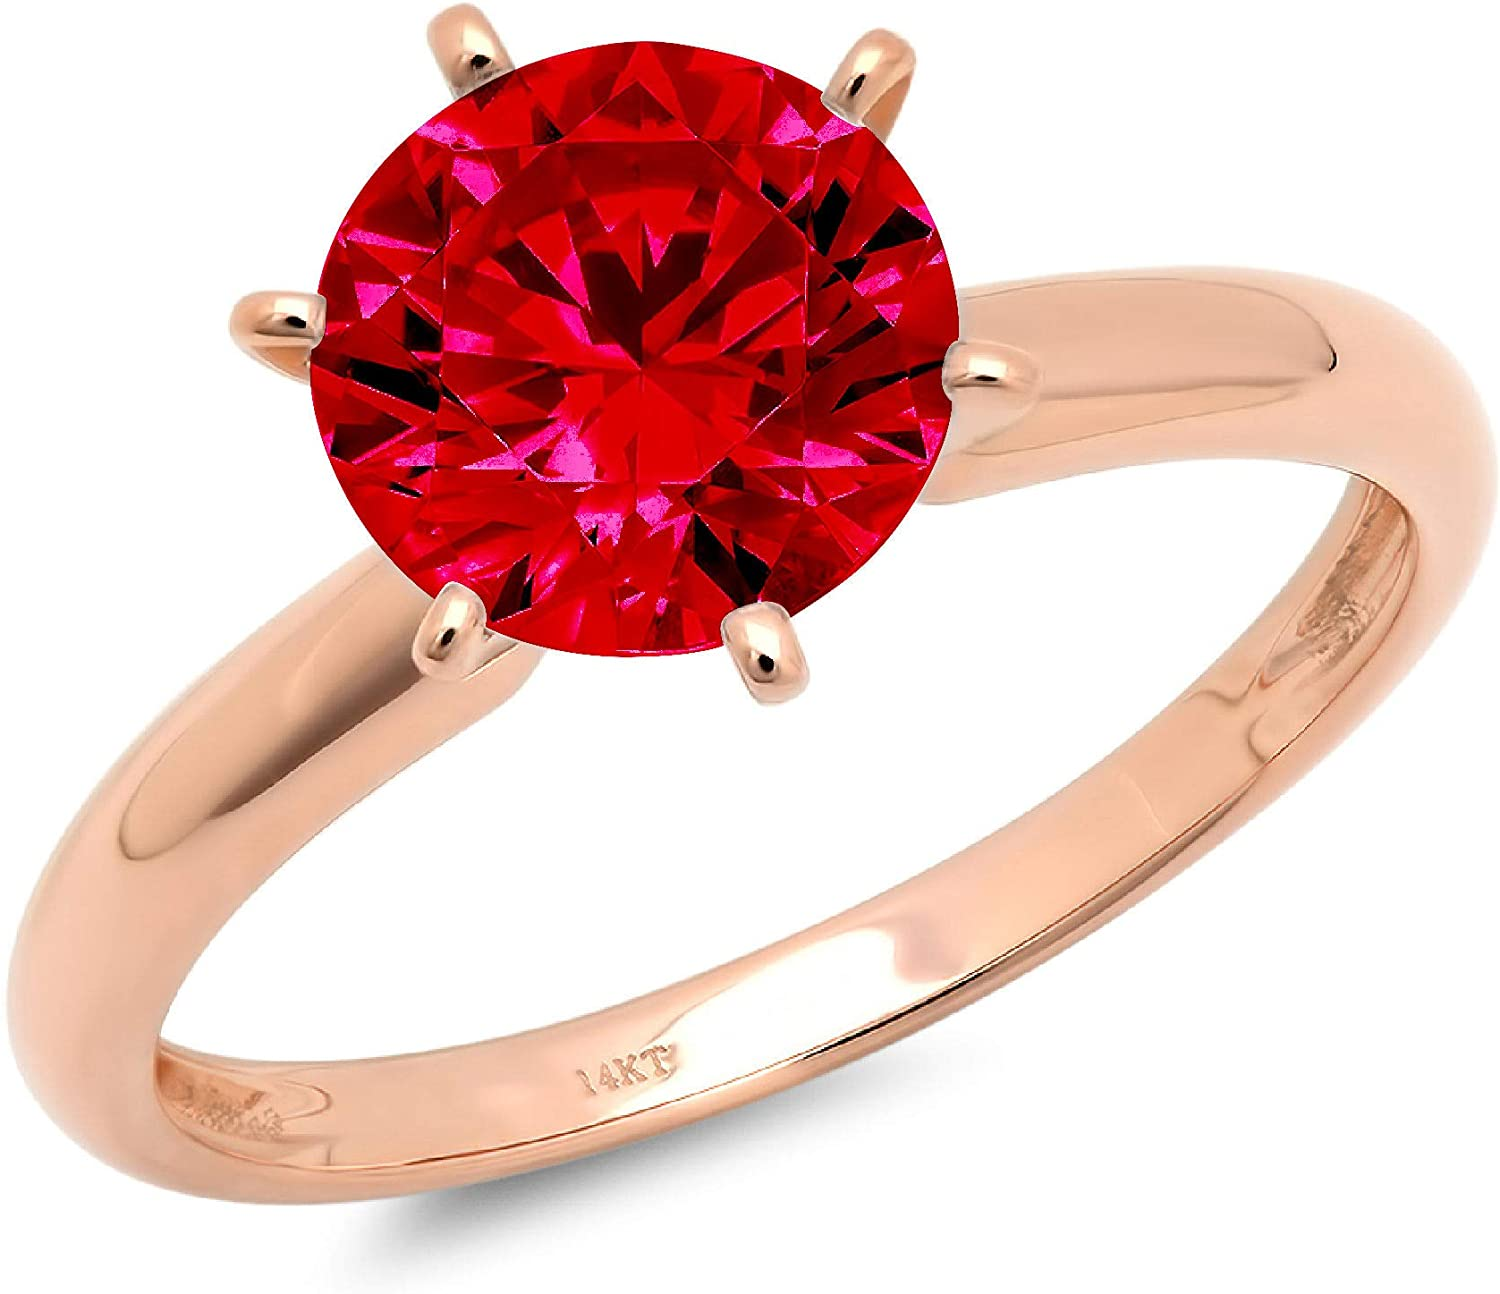 1.50 ct Brilliant Round Cut Solitaire Flawless Classic Stunning Pink Tourmaline Ideal VVS1 6-Prong Engagement Wedding Bridal Promise Anniversary Designer Ring in Solid 18K rose Gold for Women